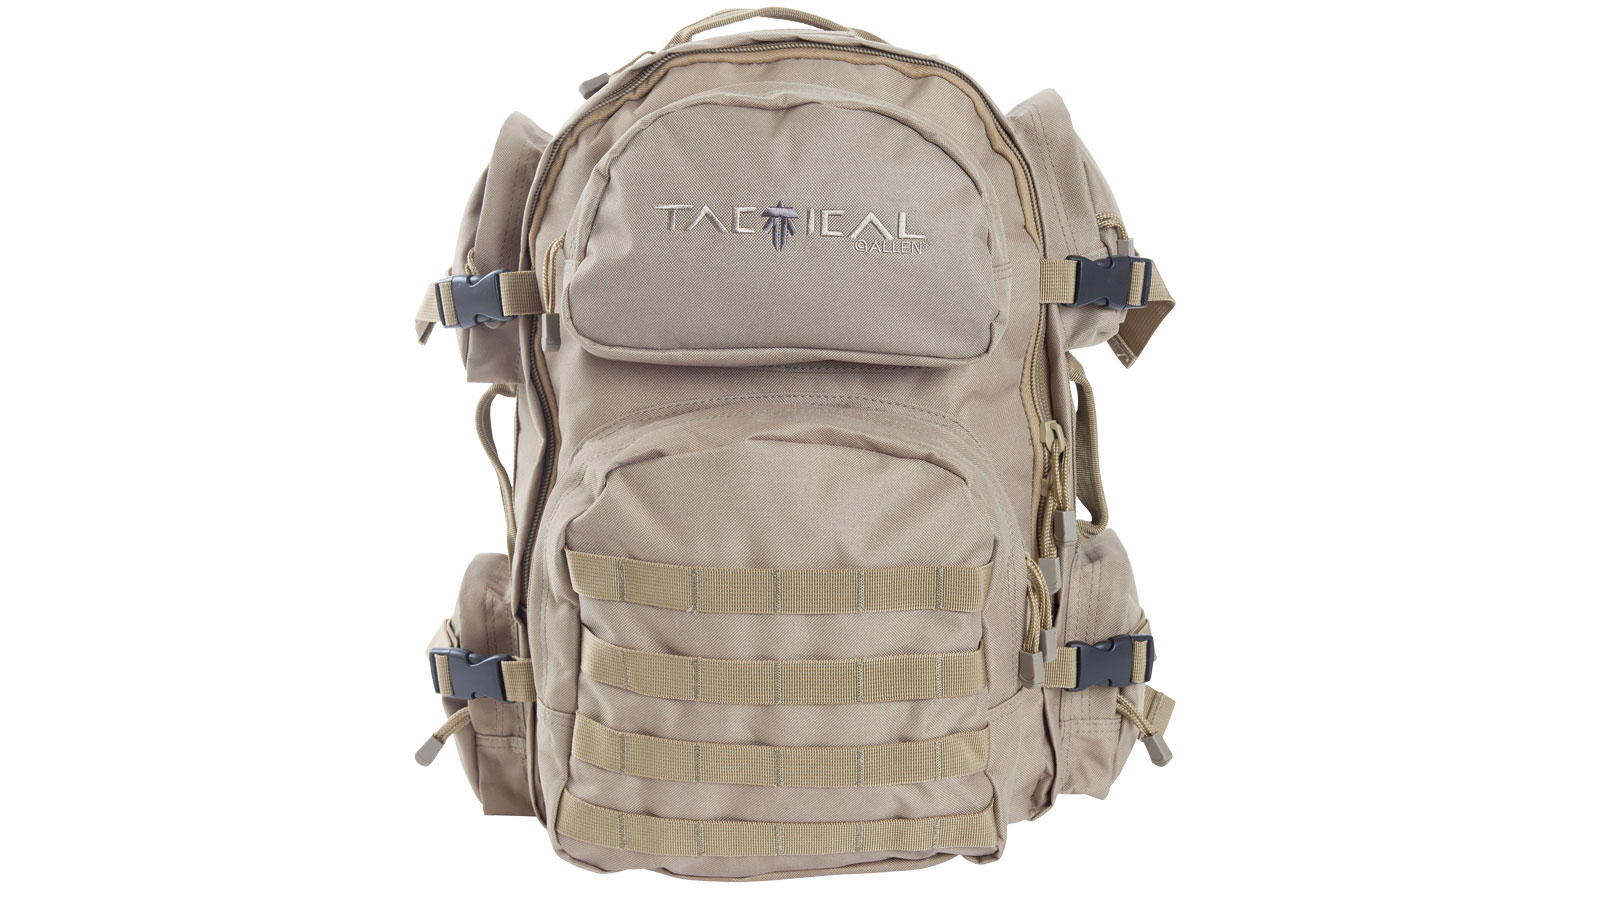 Allen 10858 Intercept Tactical Pack